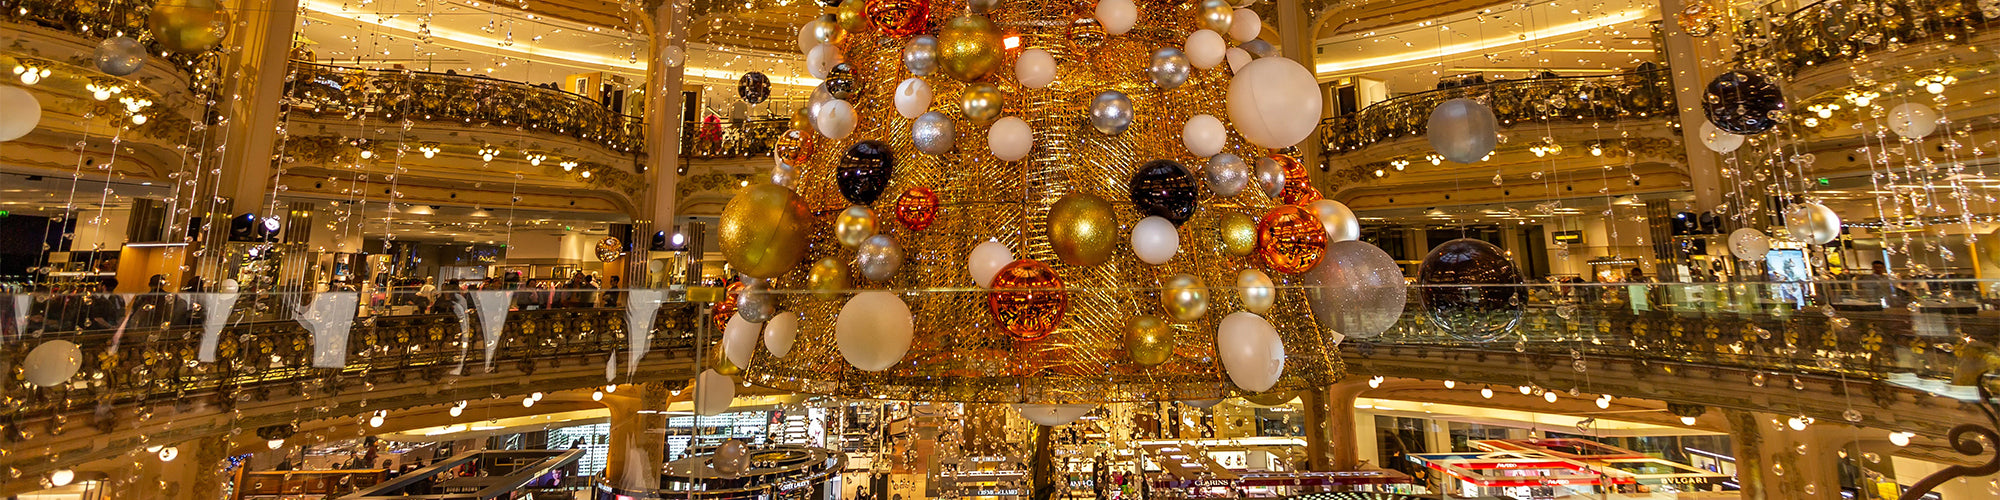 Guidance For Retail Stores During the 2020 Holiday Shopping